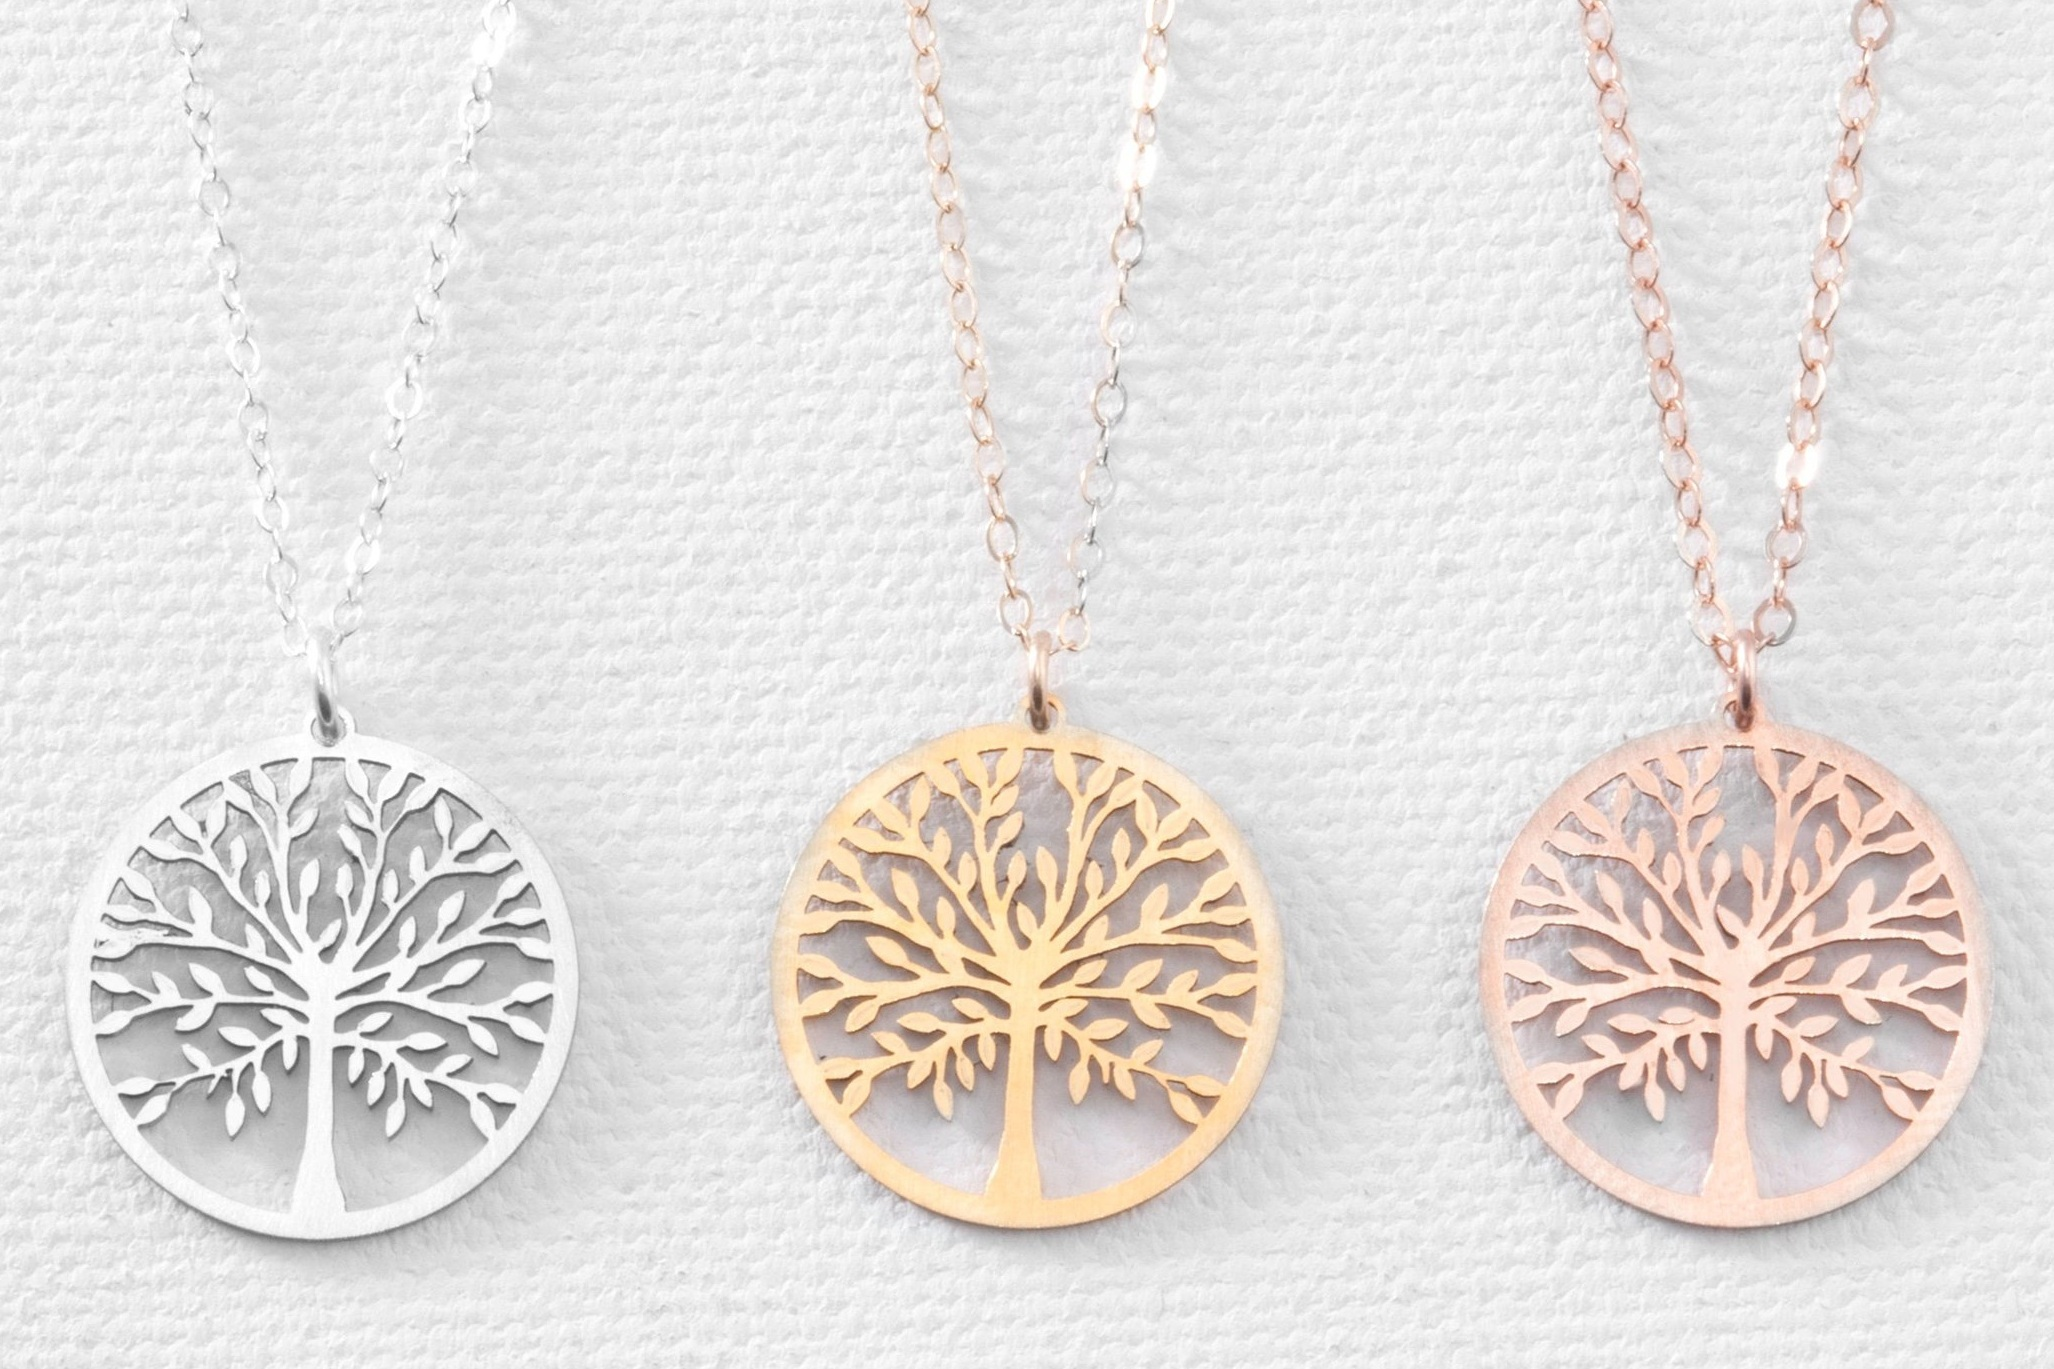 There are quite a few lovely choices on Etsy with Tree of Life designs, like this necklace, that are sure to appeal to the family history fan in your life. Search lapel pins, too!